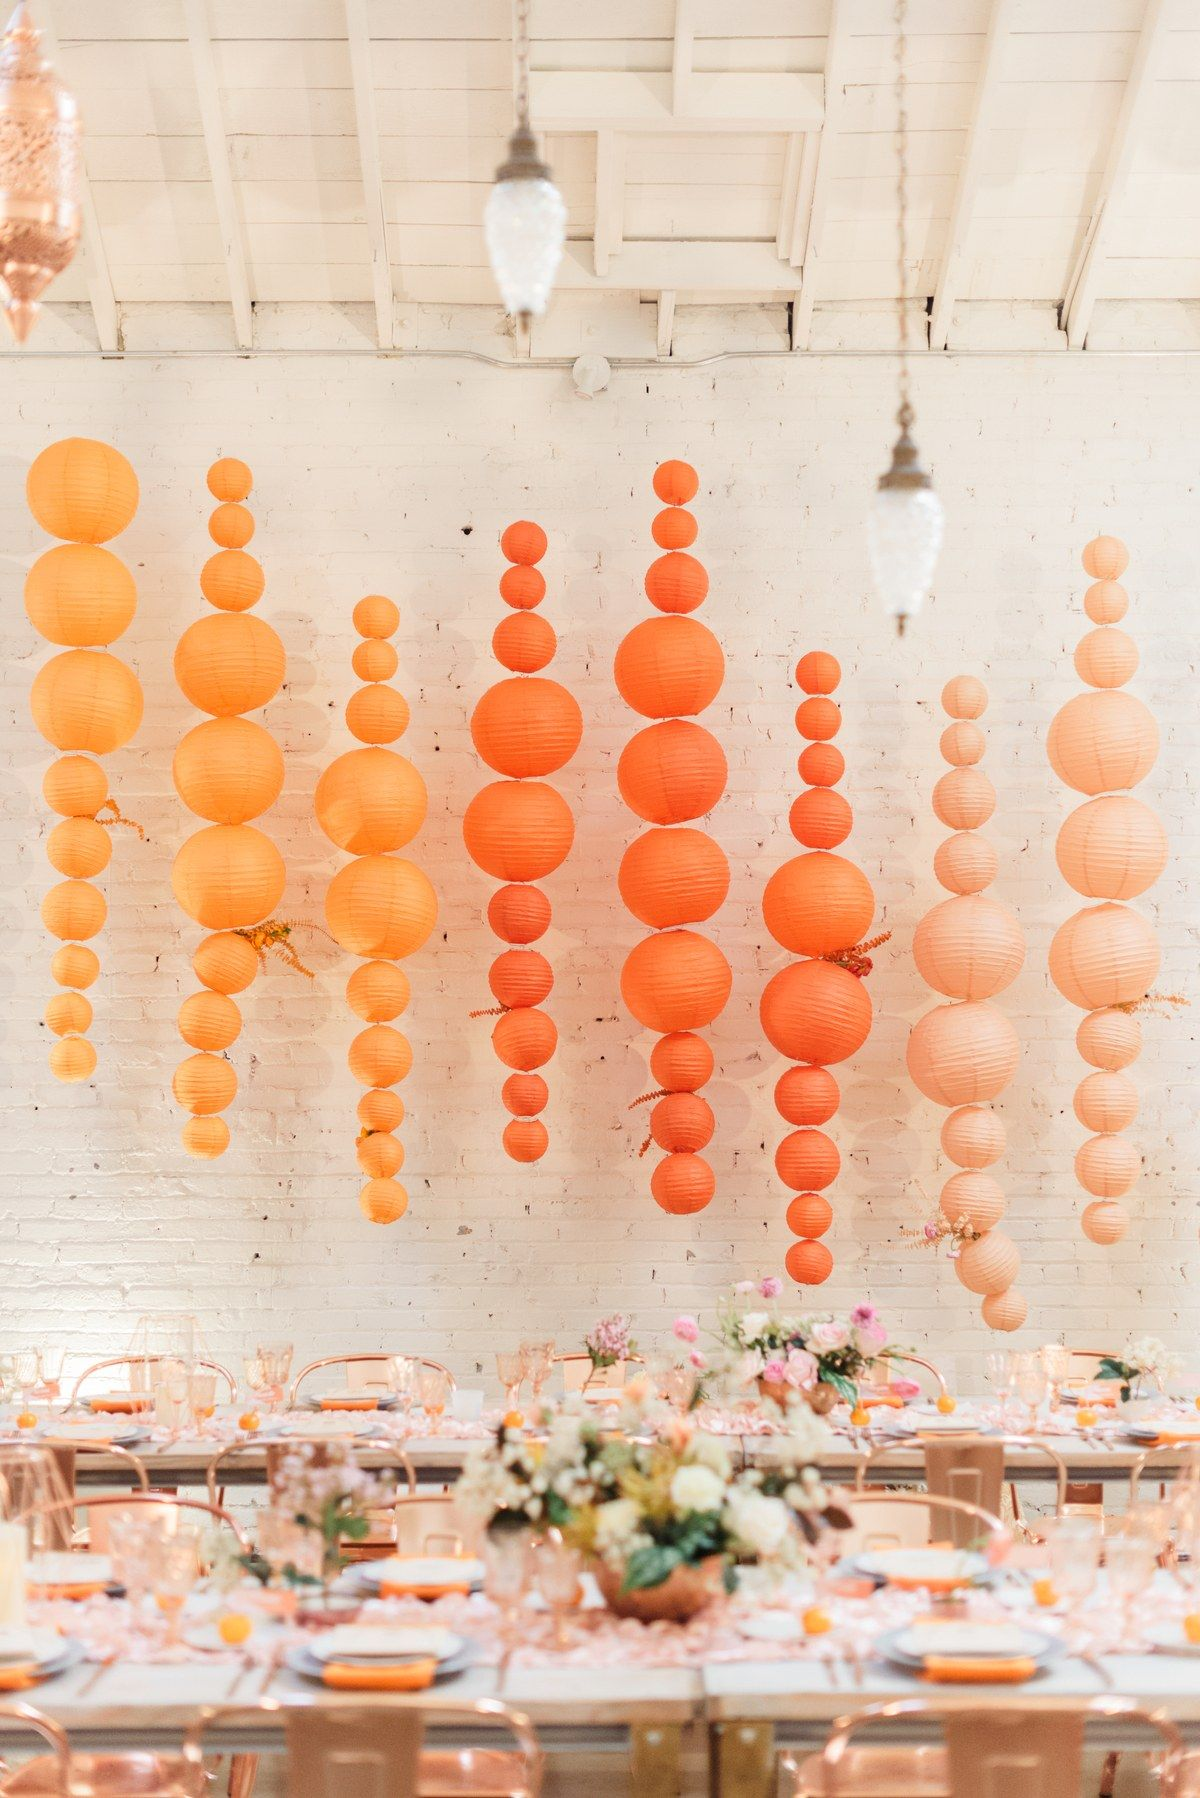 19 ways to use balloons in your wedding decor party wedding rh pinterest com